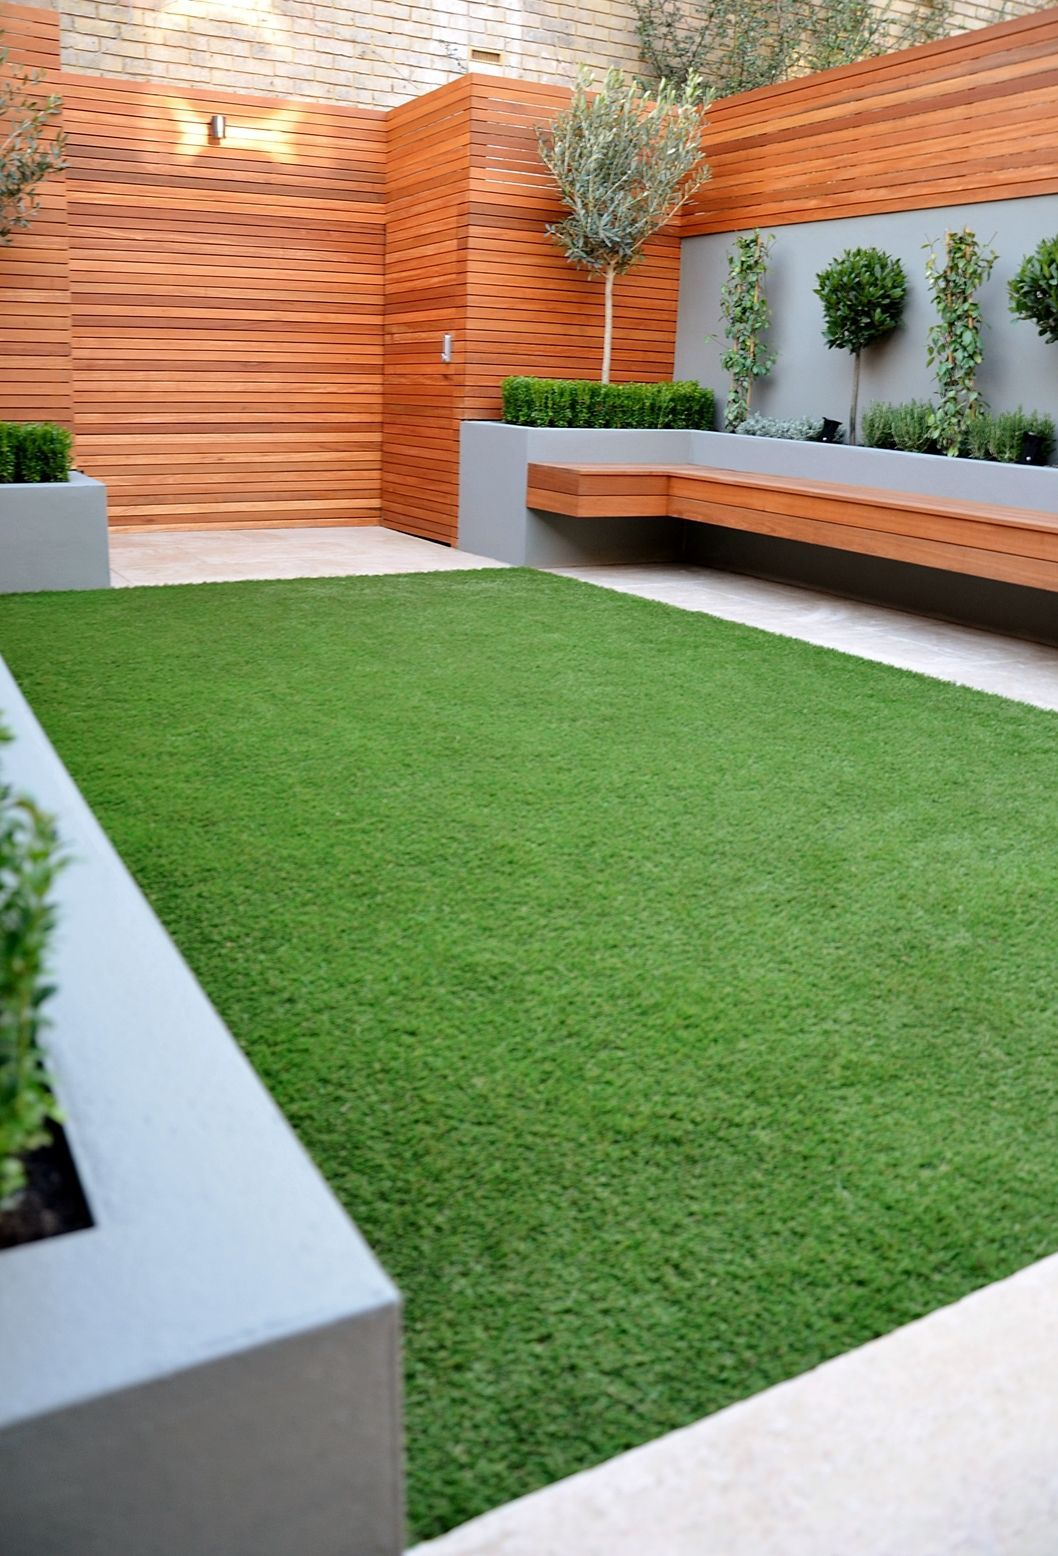 13 garden design Modern house ideas